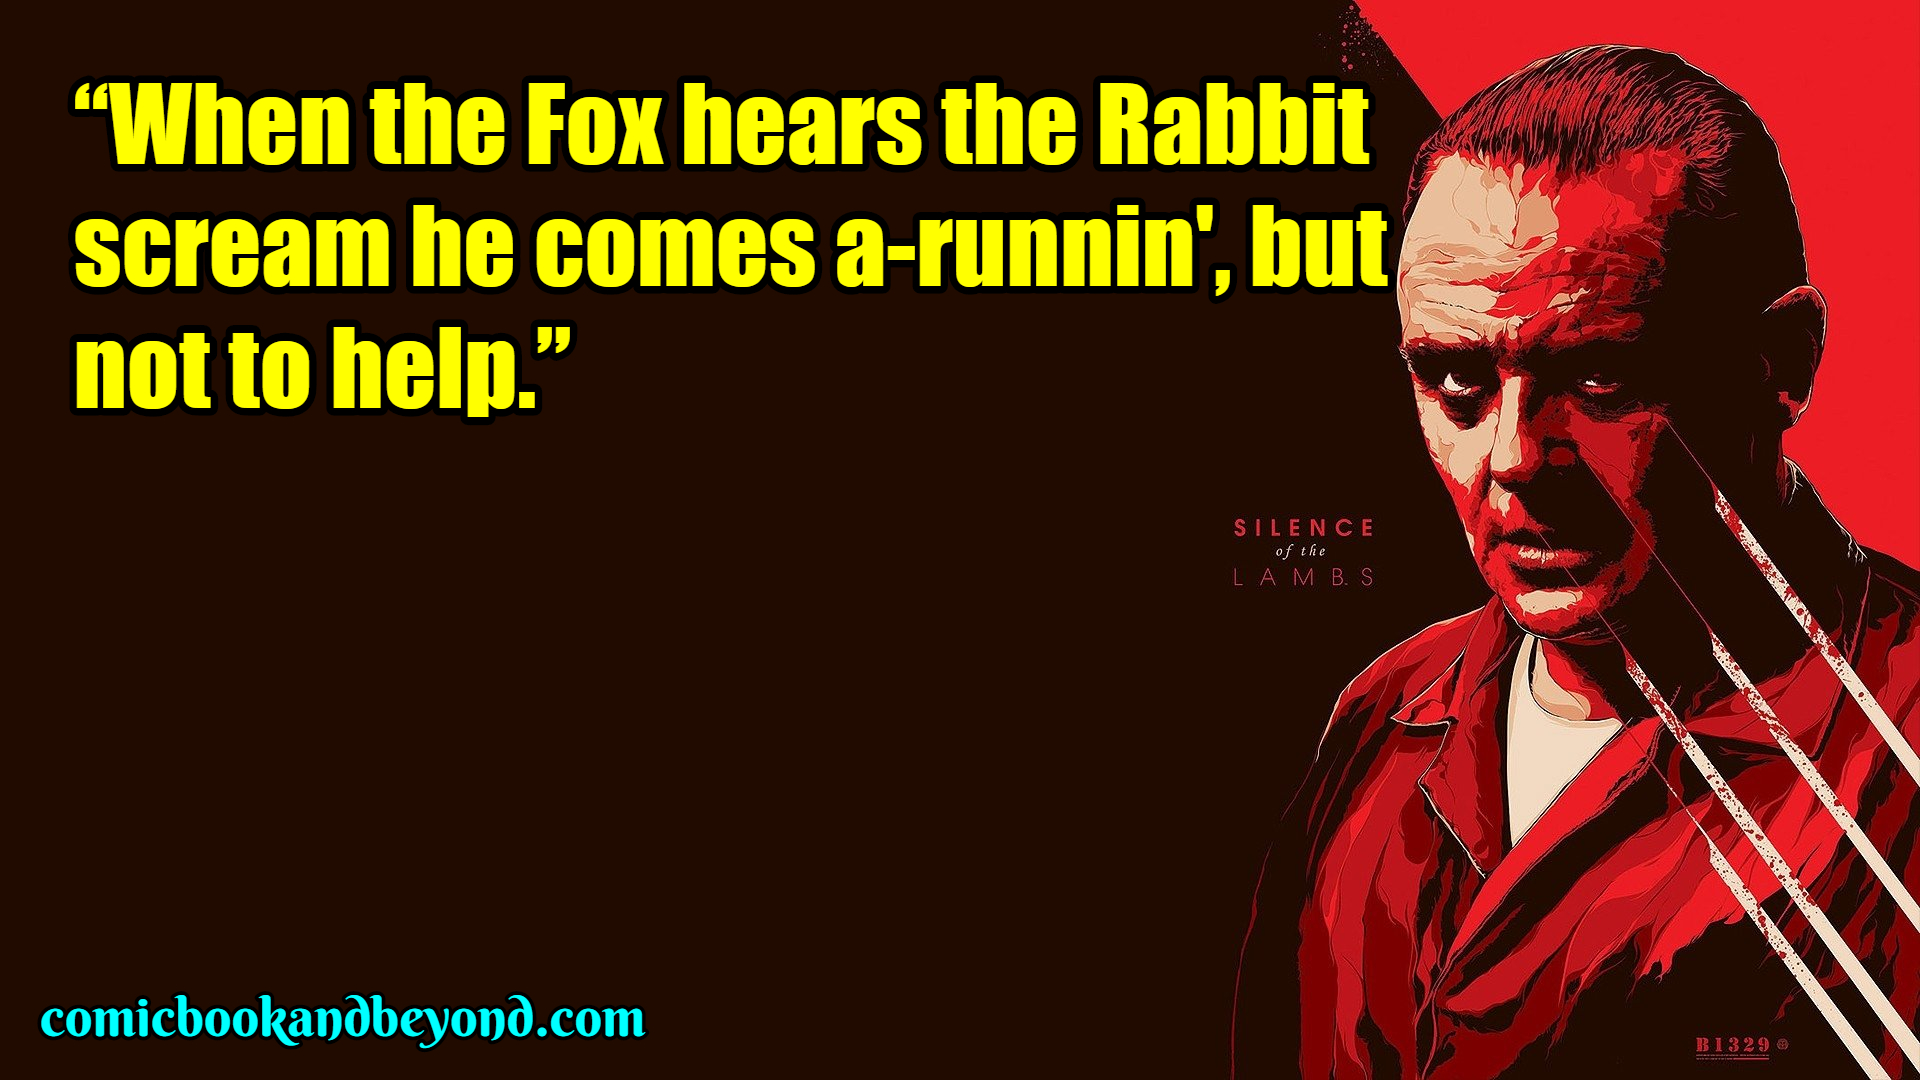 The Silence Of The Lambs SAYING